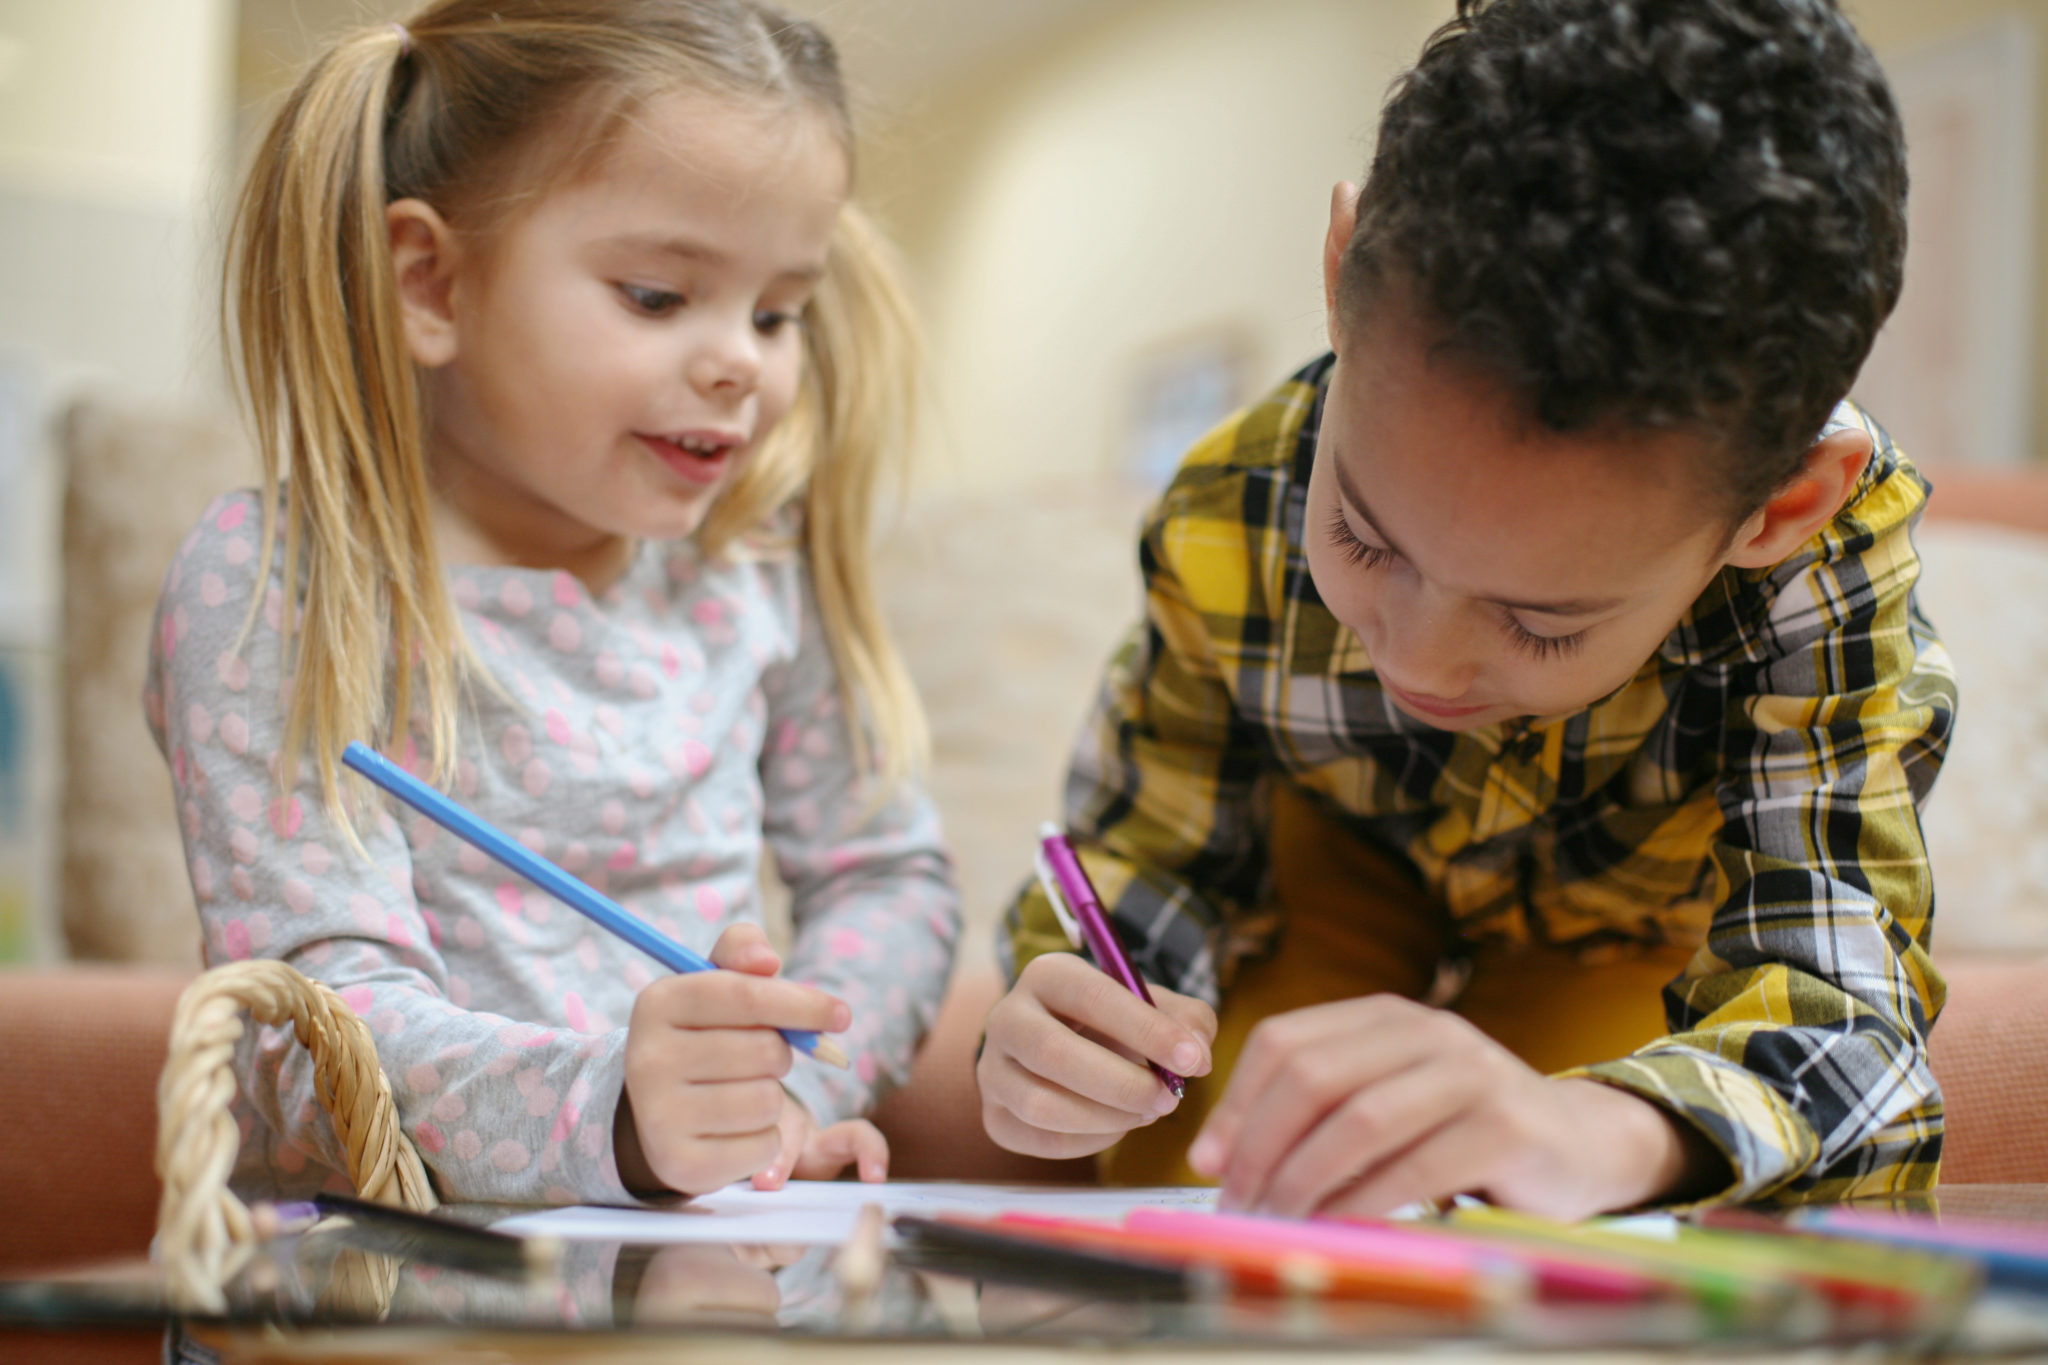 African American boy and Caucasian girl drawing together.